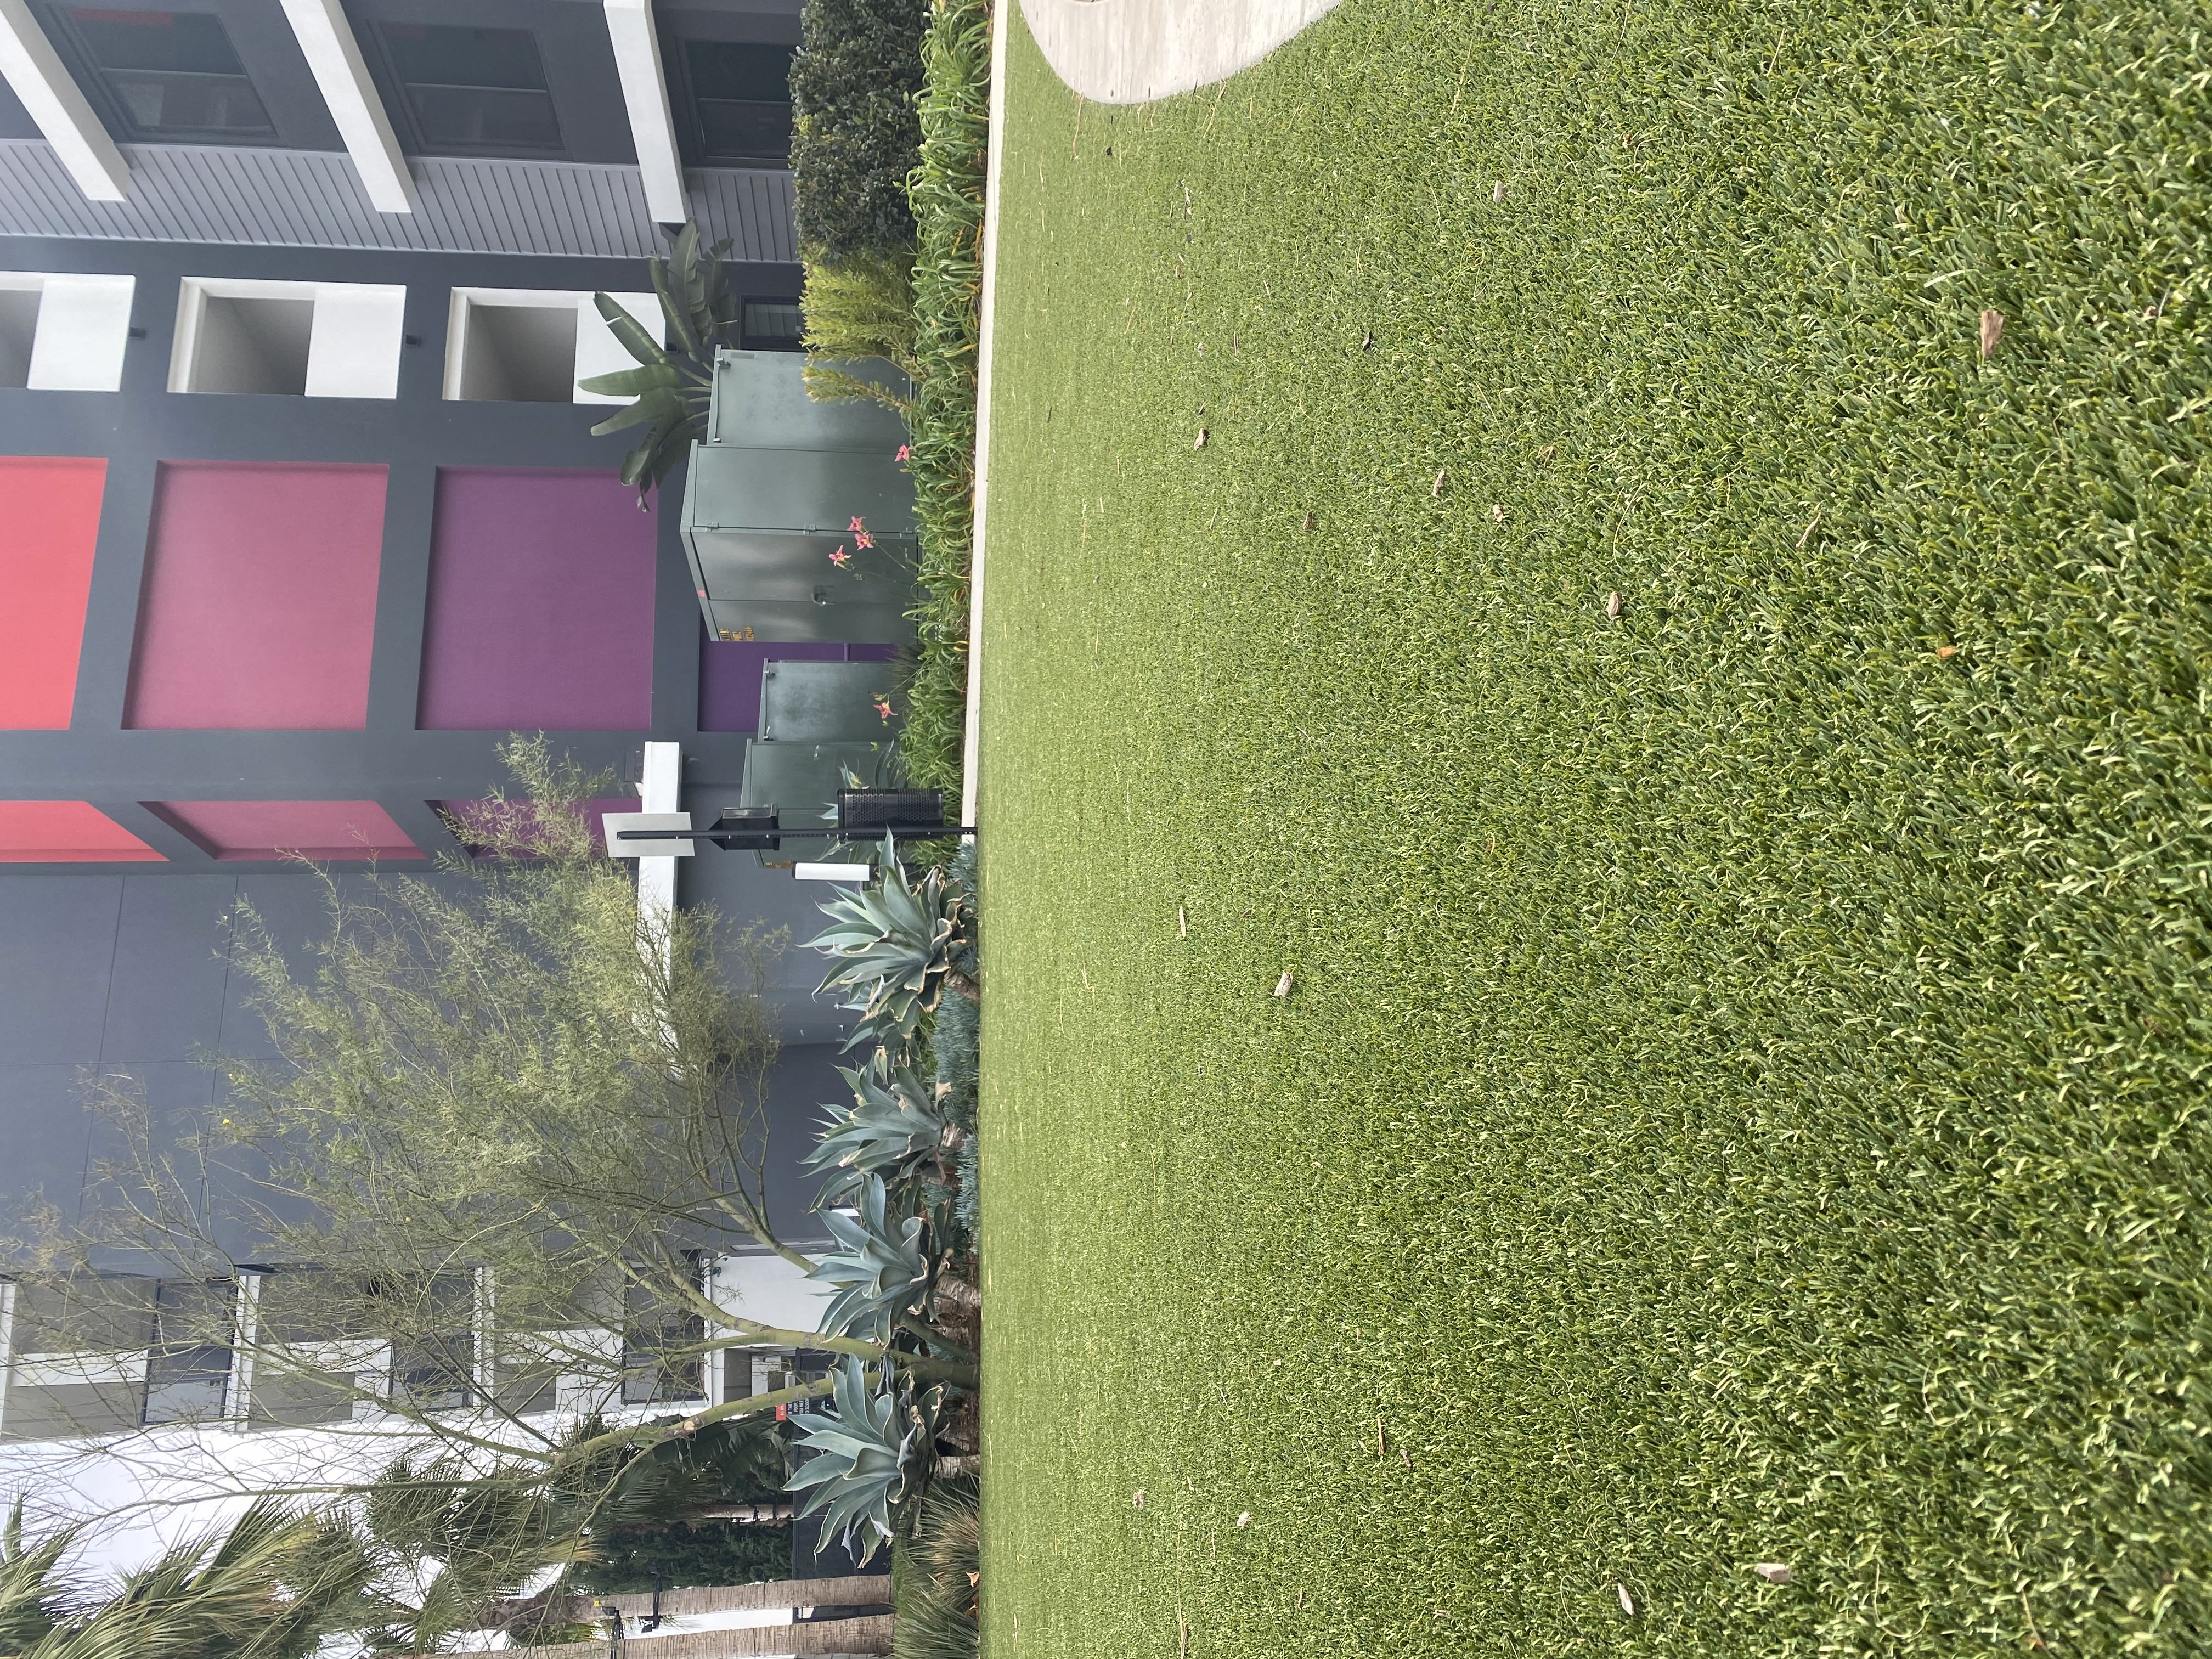 Cool Blue Hollow Olive artificial turf,synthetic turf,artificial turf installation,how to install artificial turf,used artificial turf,most realistic artificial grass,realistic artificial grass